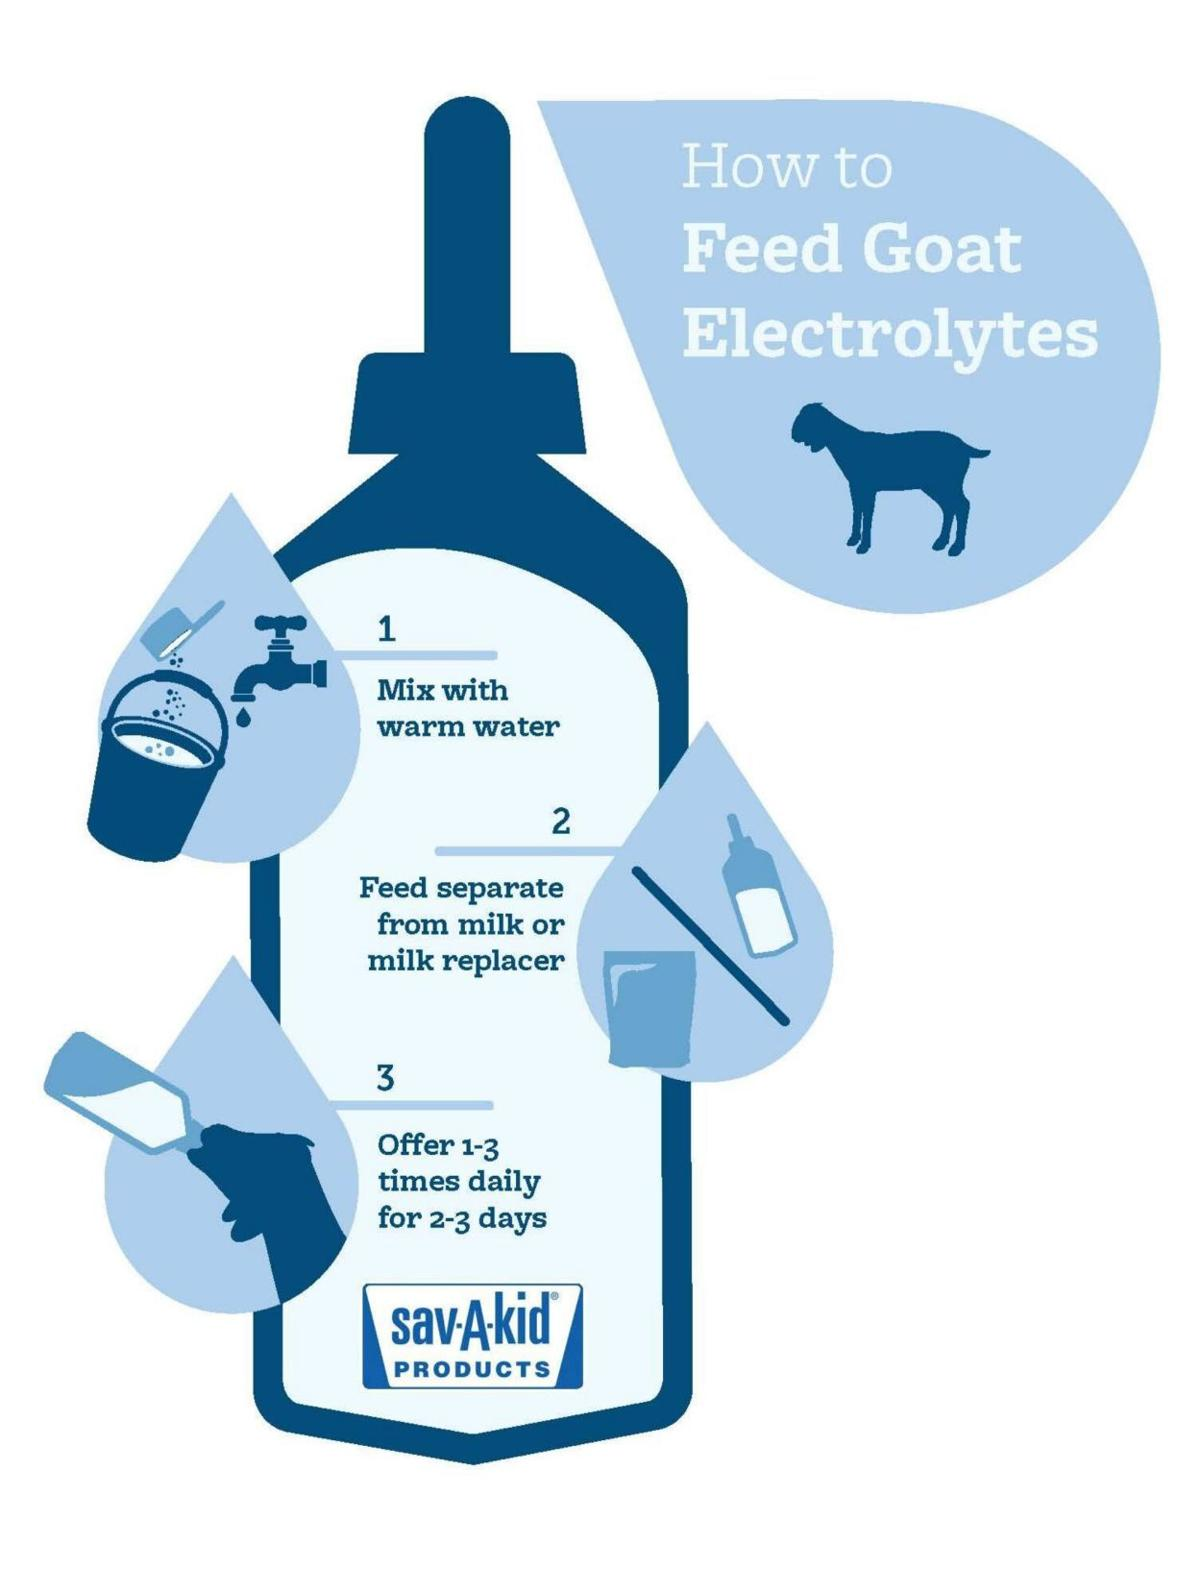 How to Feed Goats Electrolytes